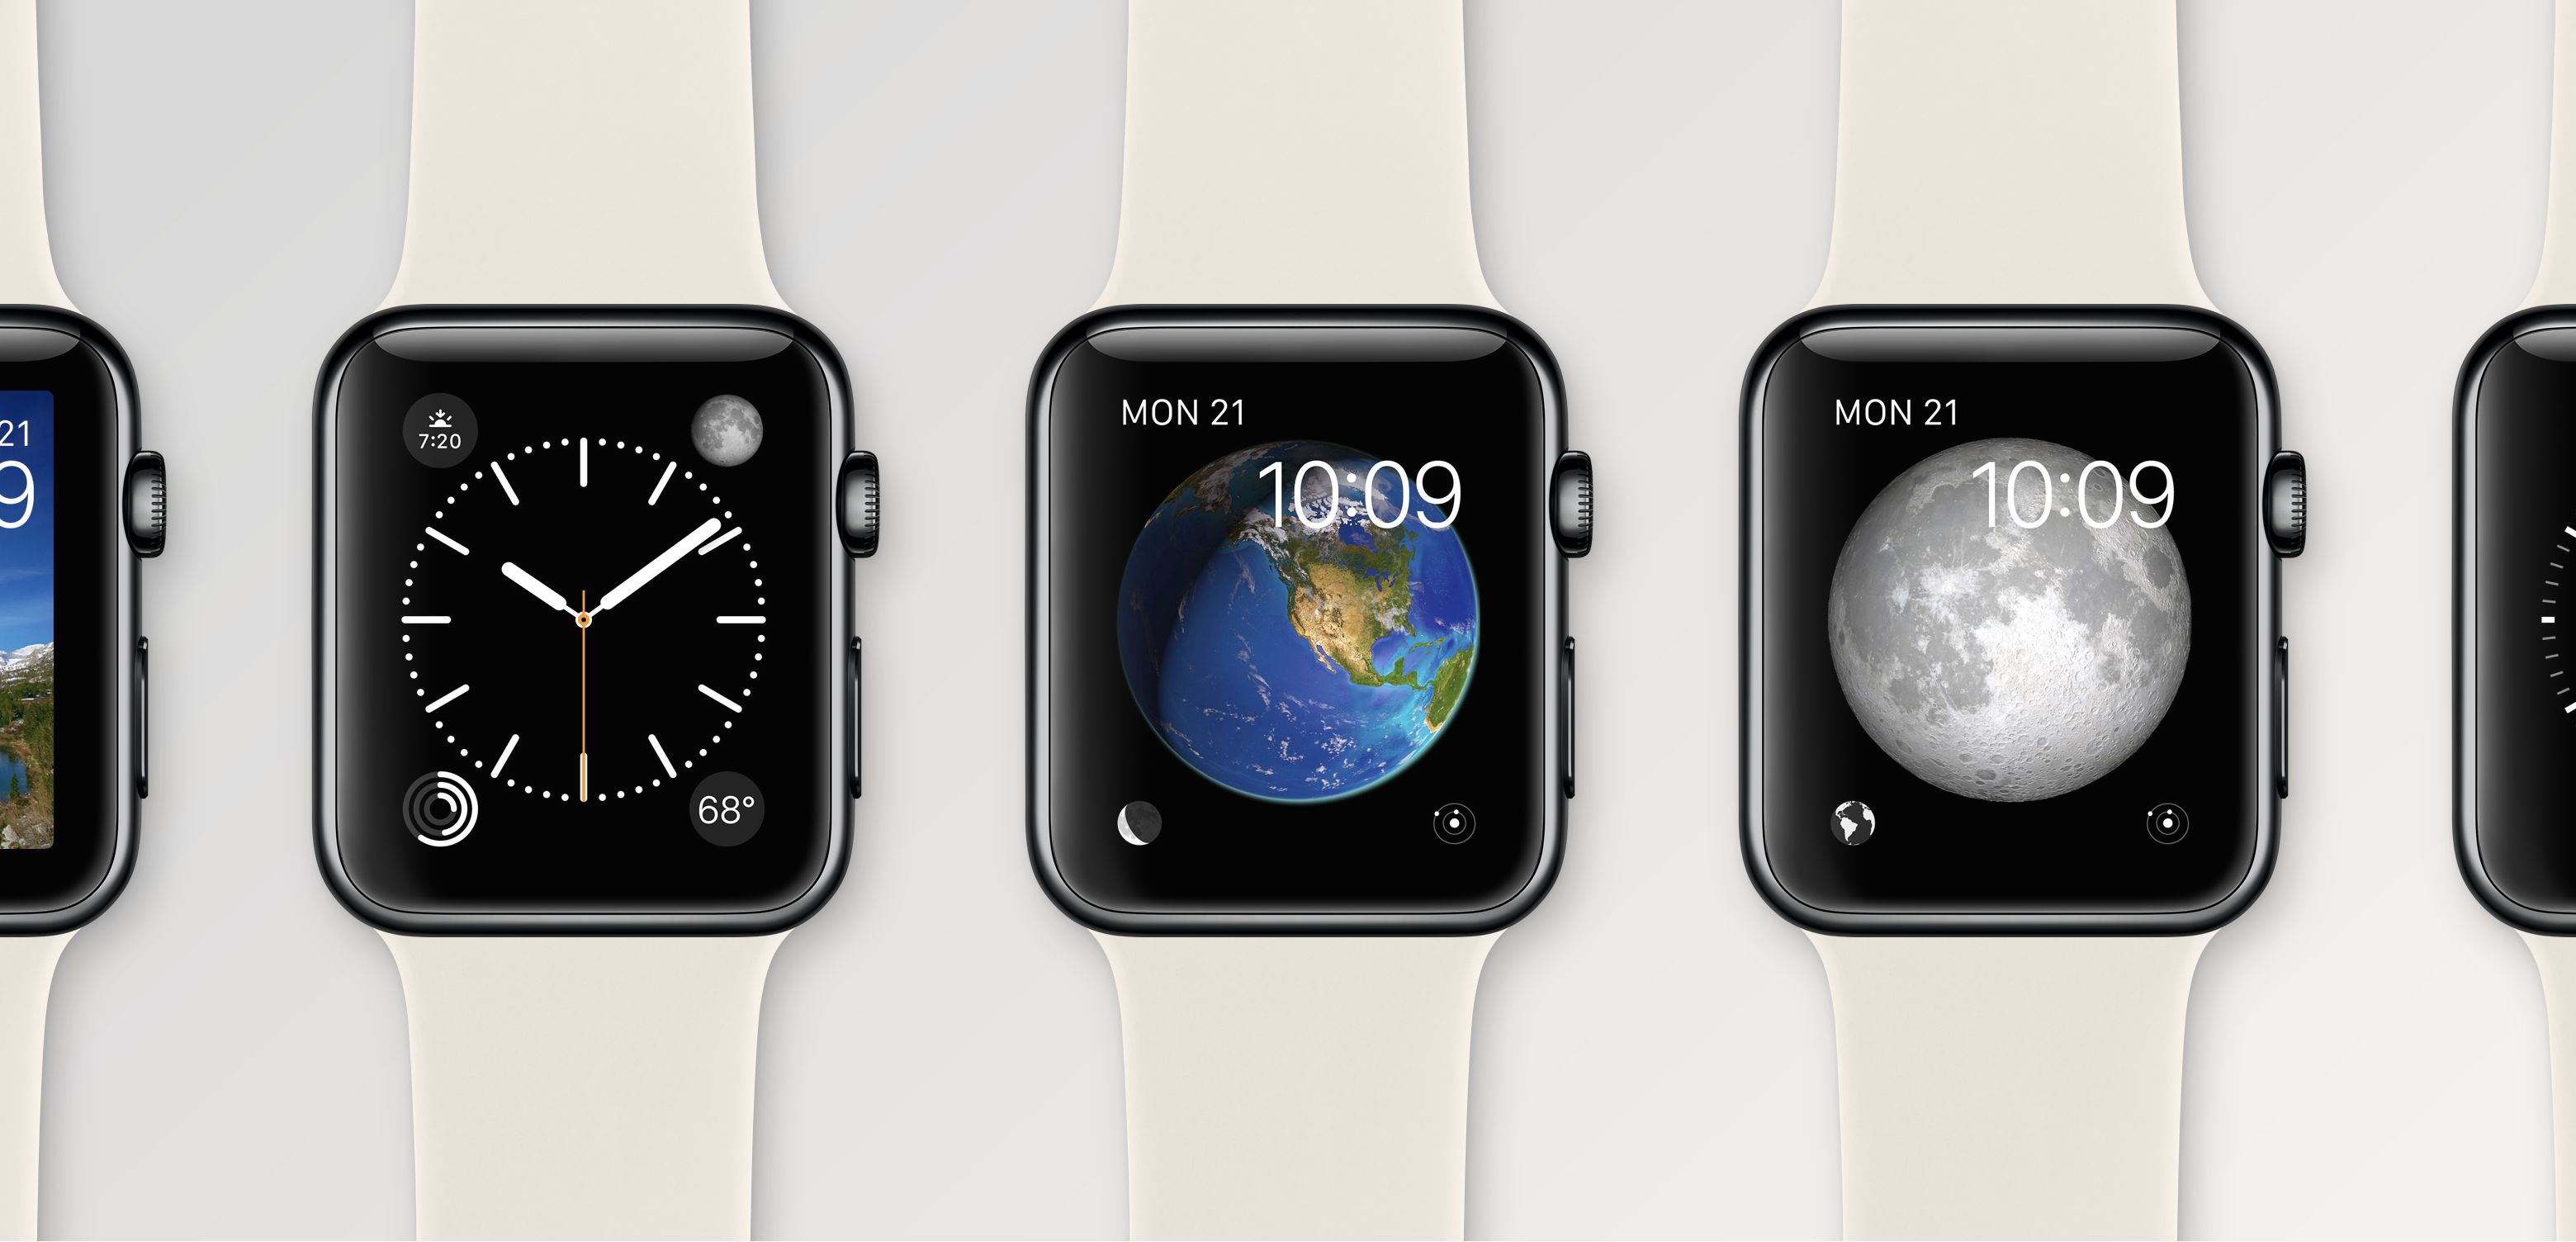 Rumor: Apple Watch 2 Predicted to Debut at WWDC, Will Be Up To 40% Thinner